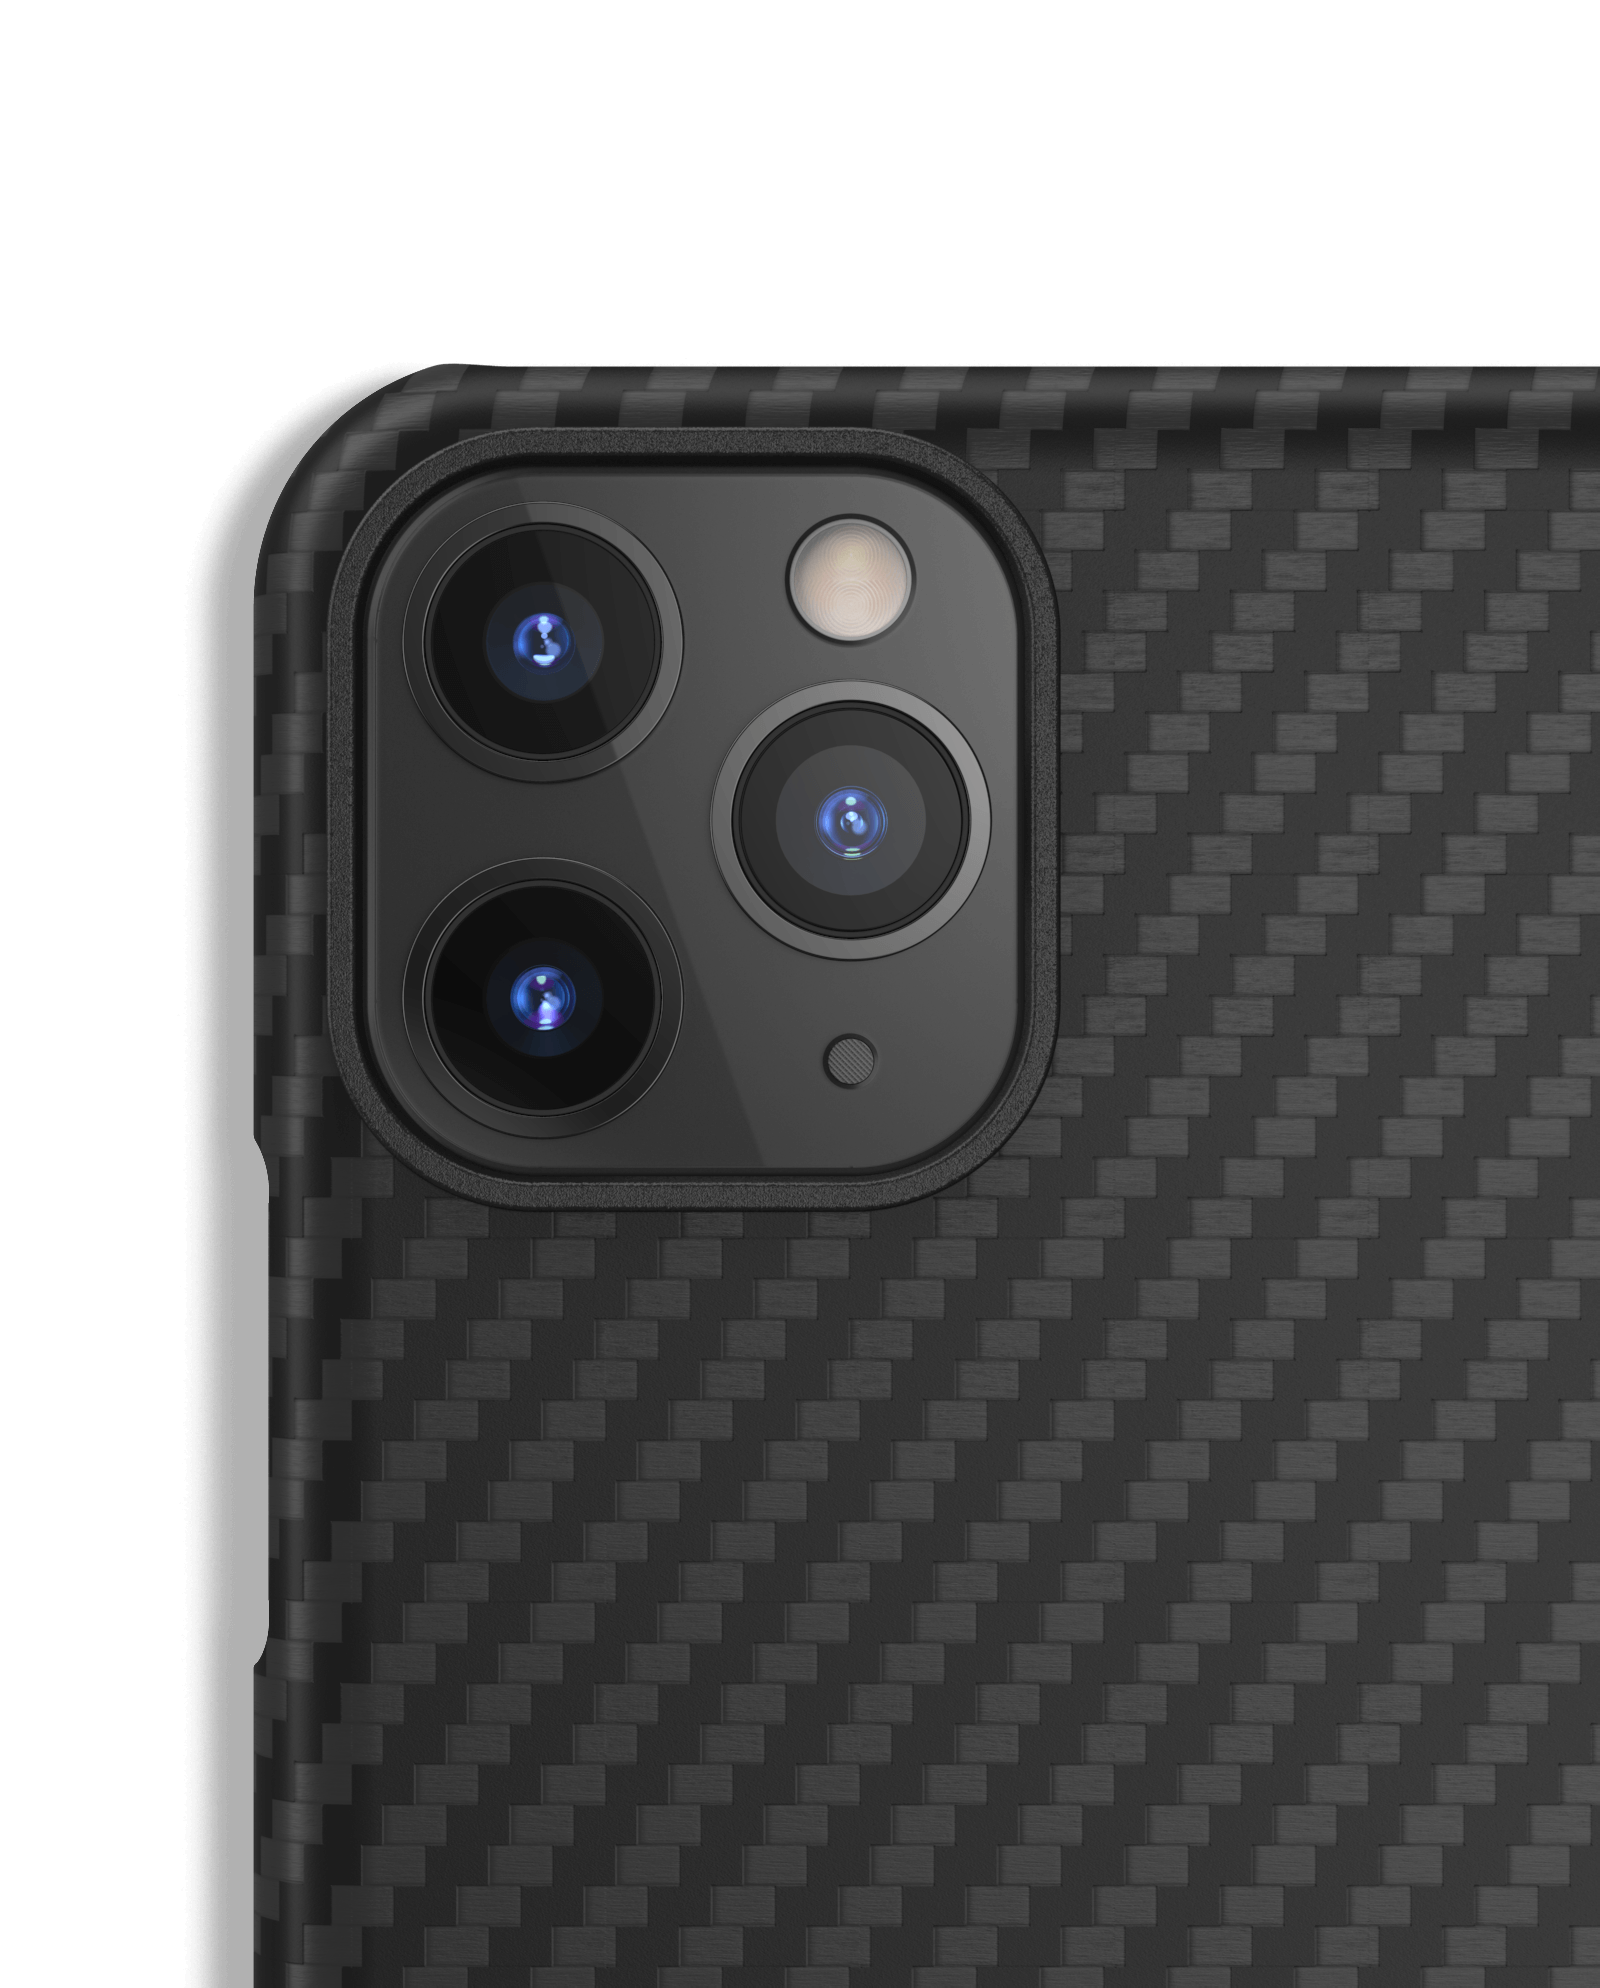 Close up of camera on cell phone with Mason aramid fiber case